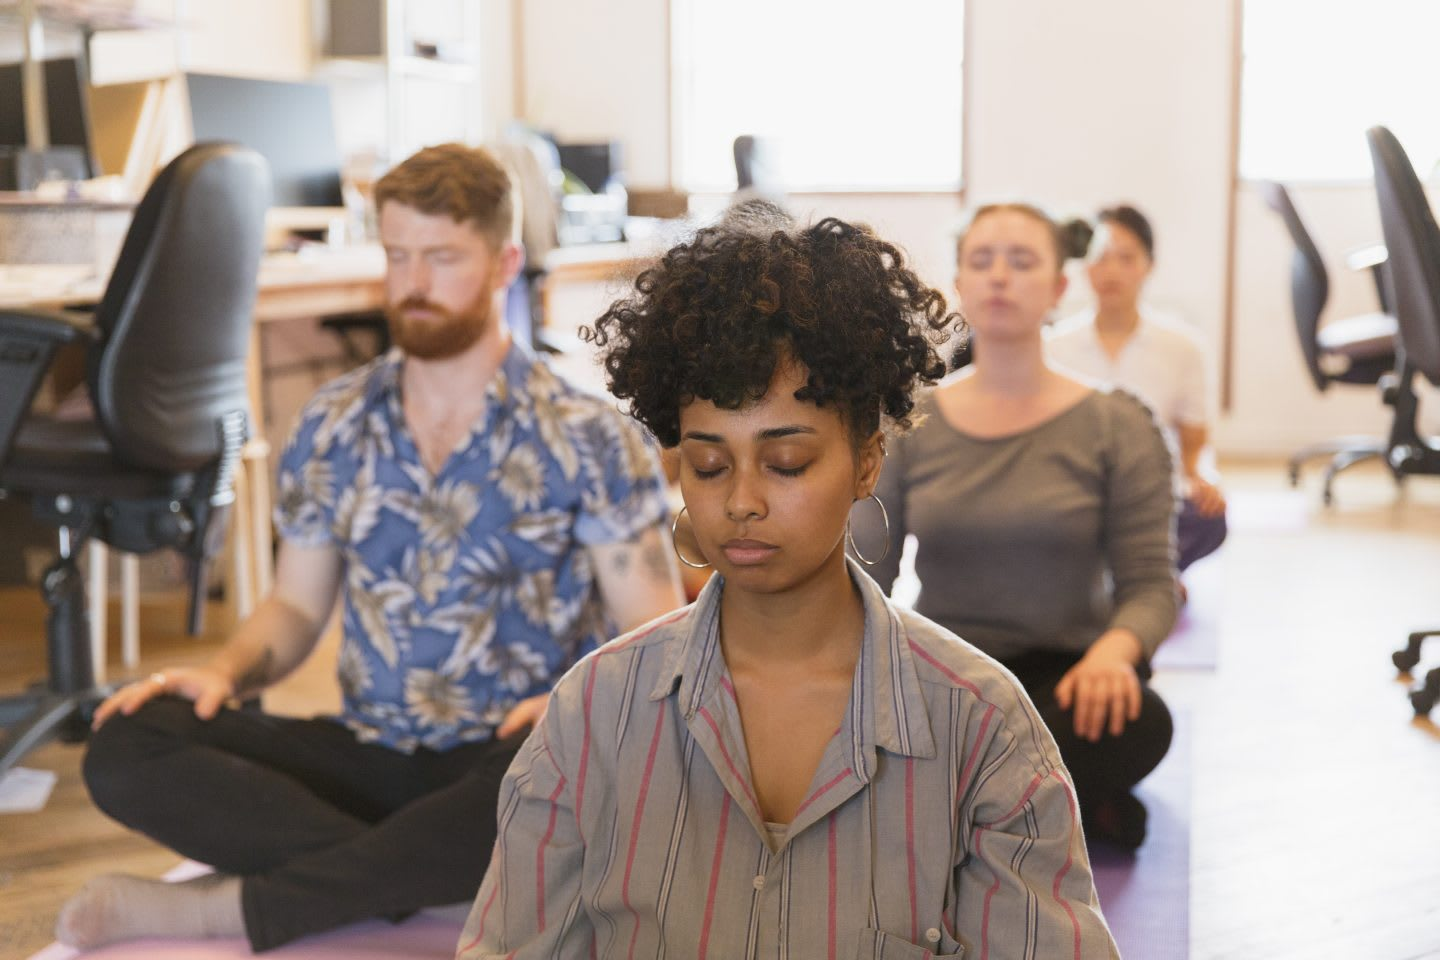 Serene creative business people meditating in office as part of their employer's wellness program